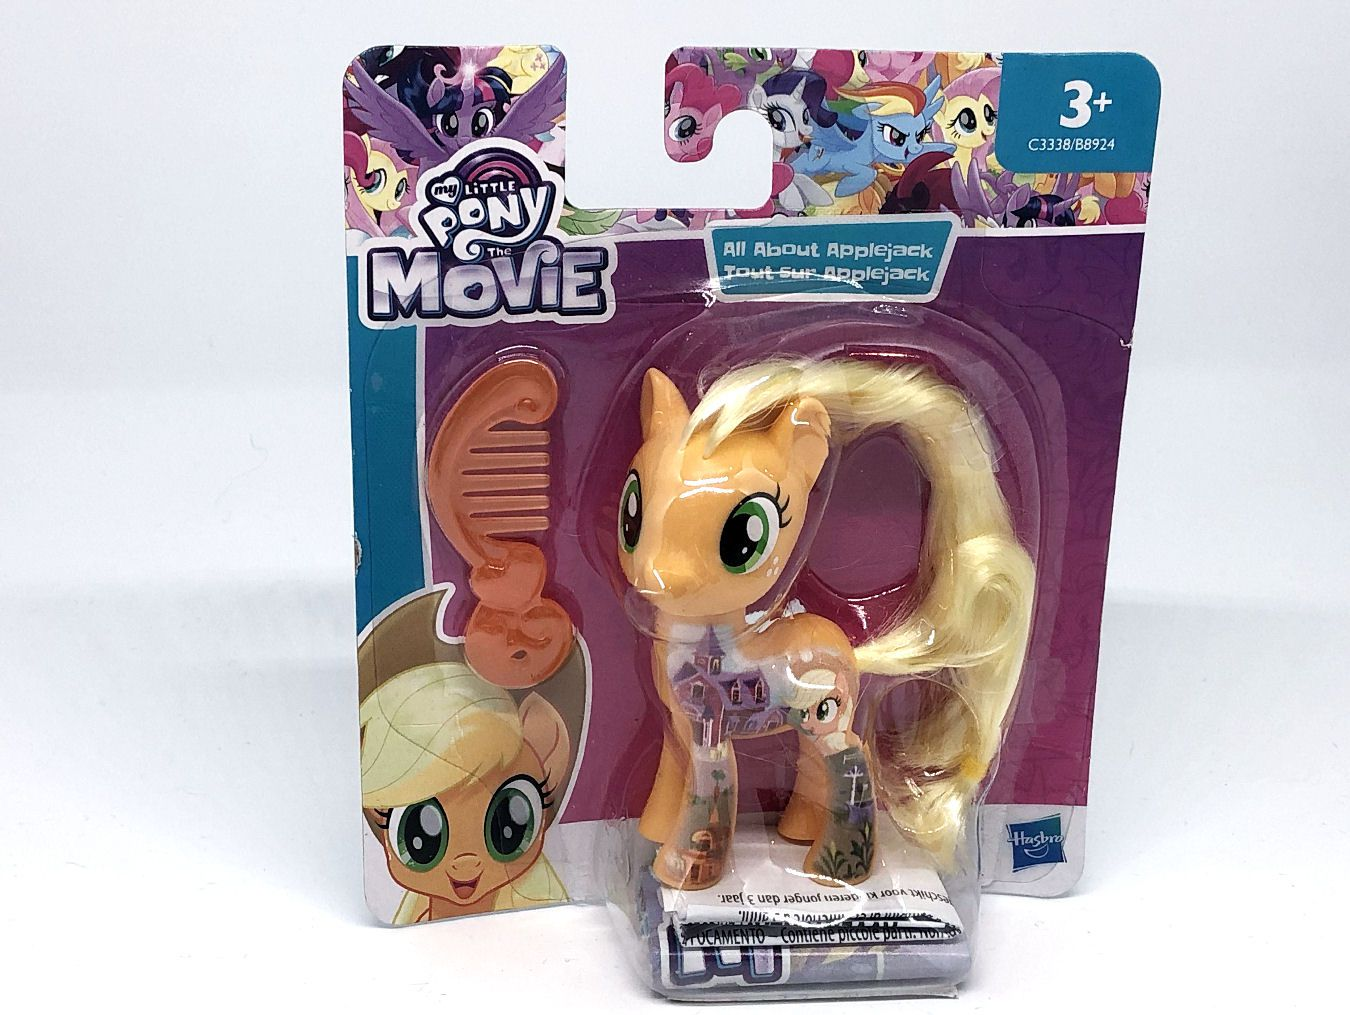 Applejack (My Little Pony the Movie)